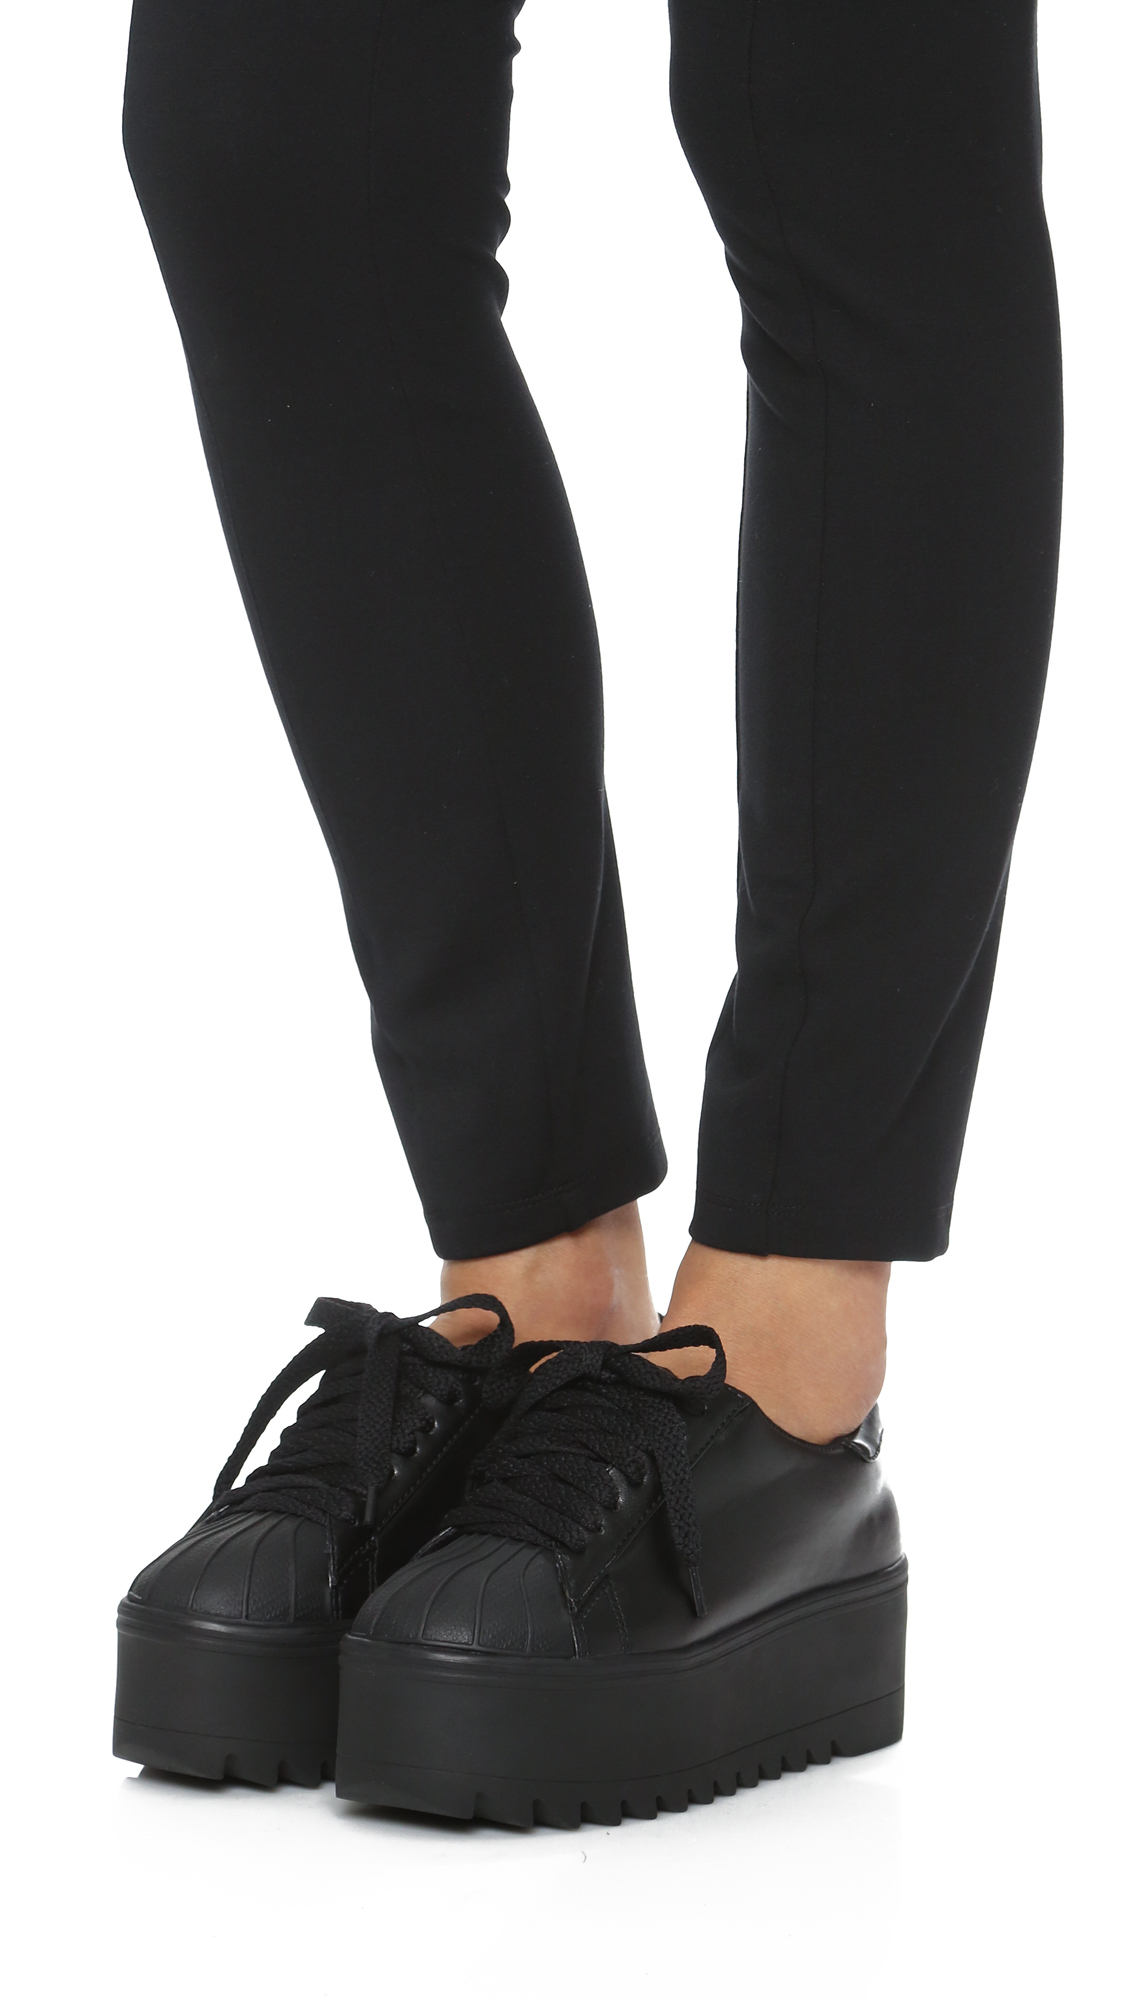 Jeffrey Campbell Synergy Platform Sneakers in Black